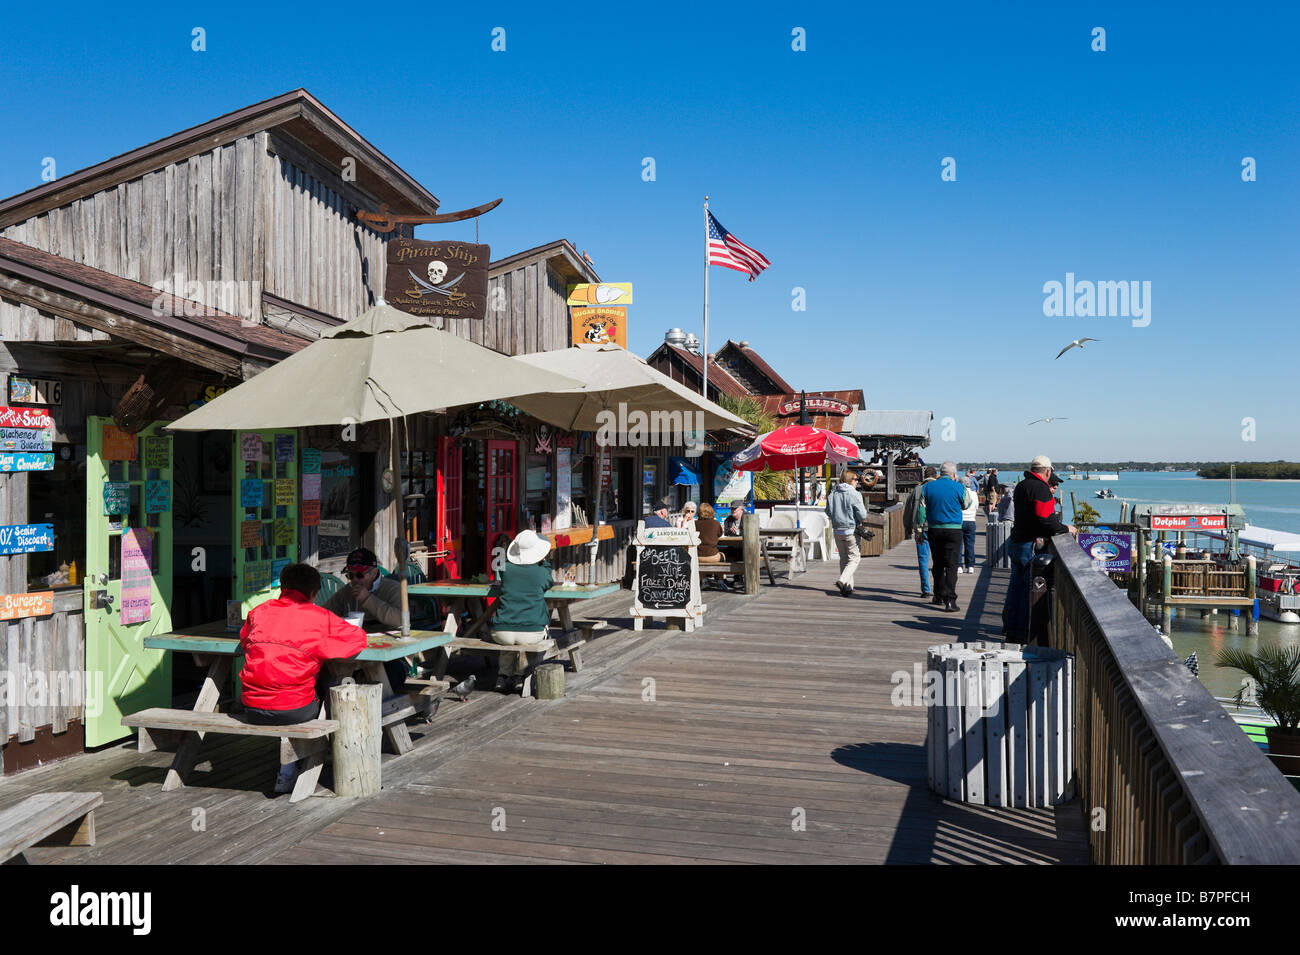 Seafront Shops And Restaurants On The Boardwalk At Johns Pass Stock